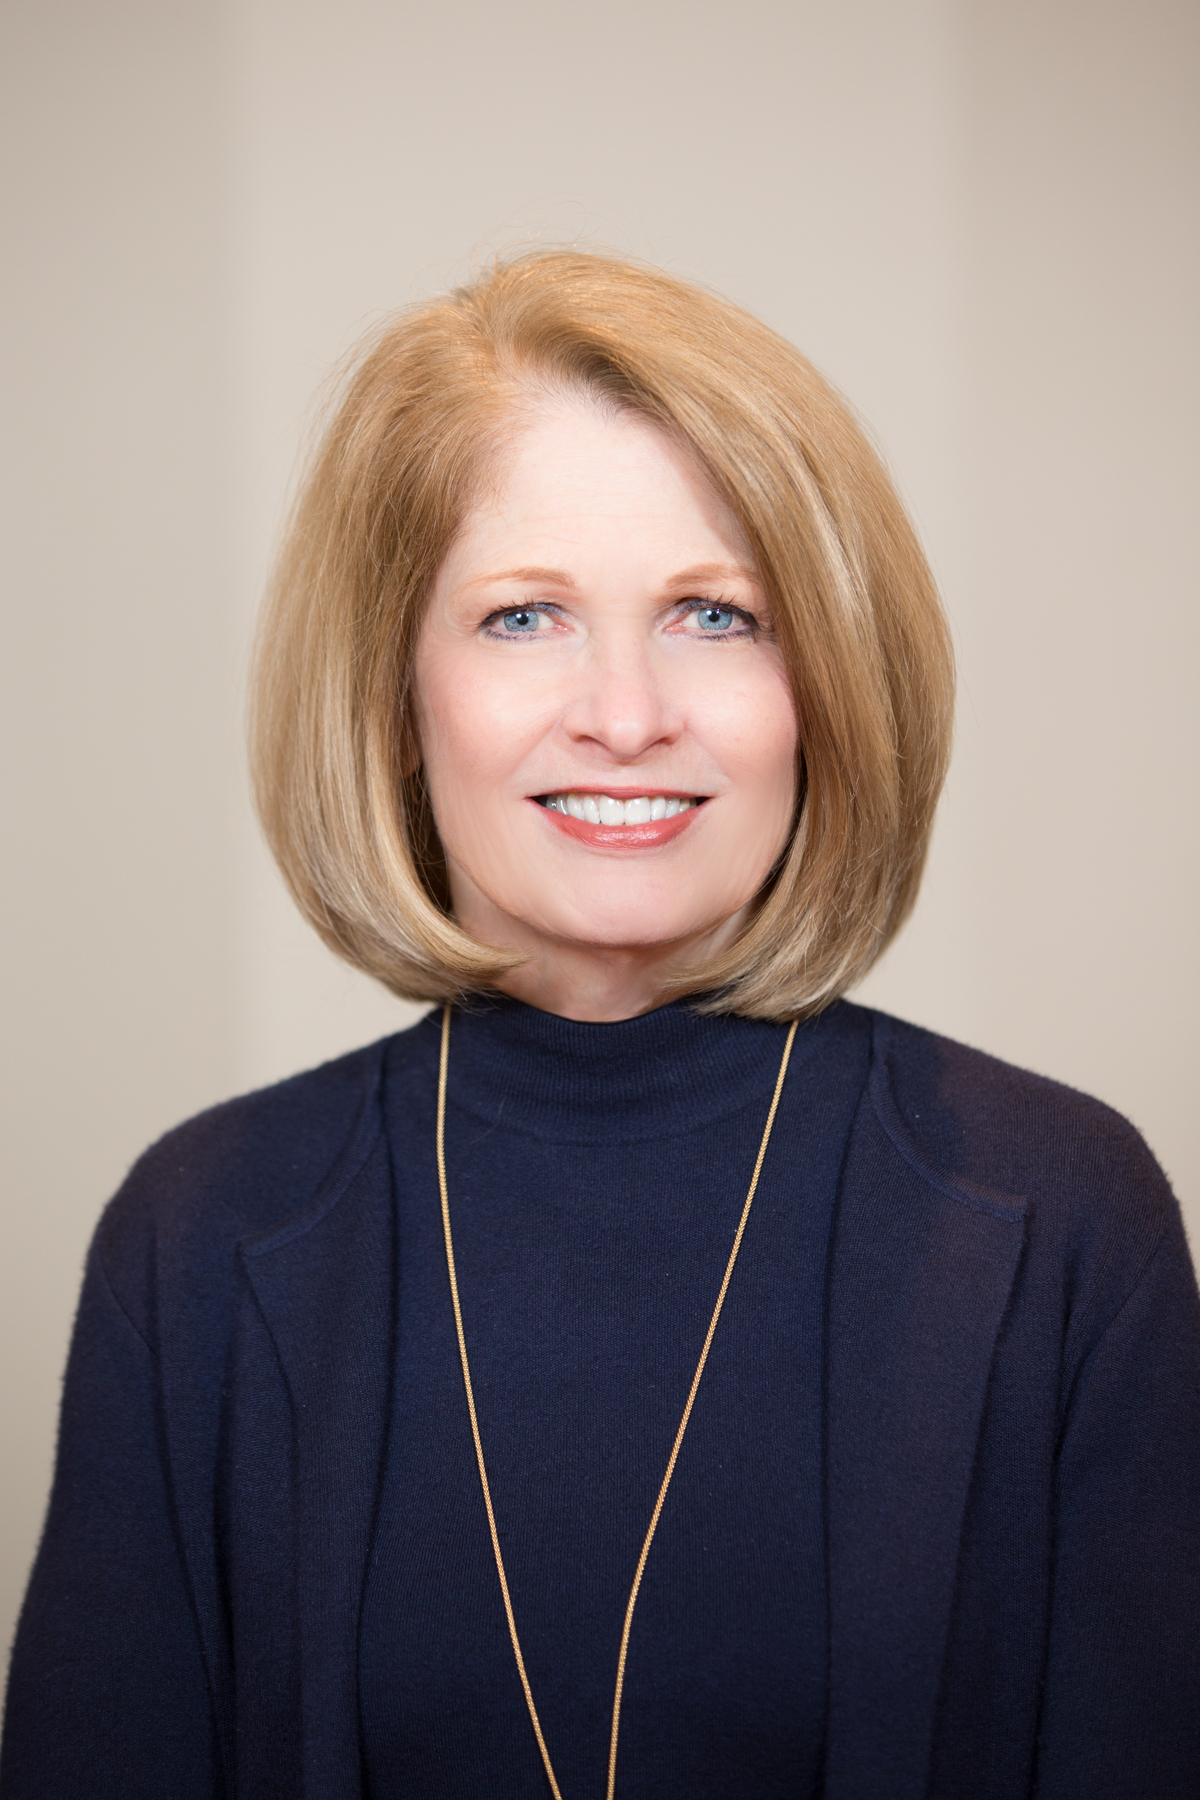 <b>Marna P. Borgstrom</b><br>CEO<br>Yale - New Haven Hospital<br>Yale - New Haven Health System